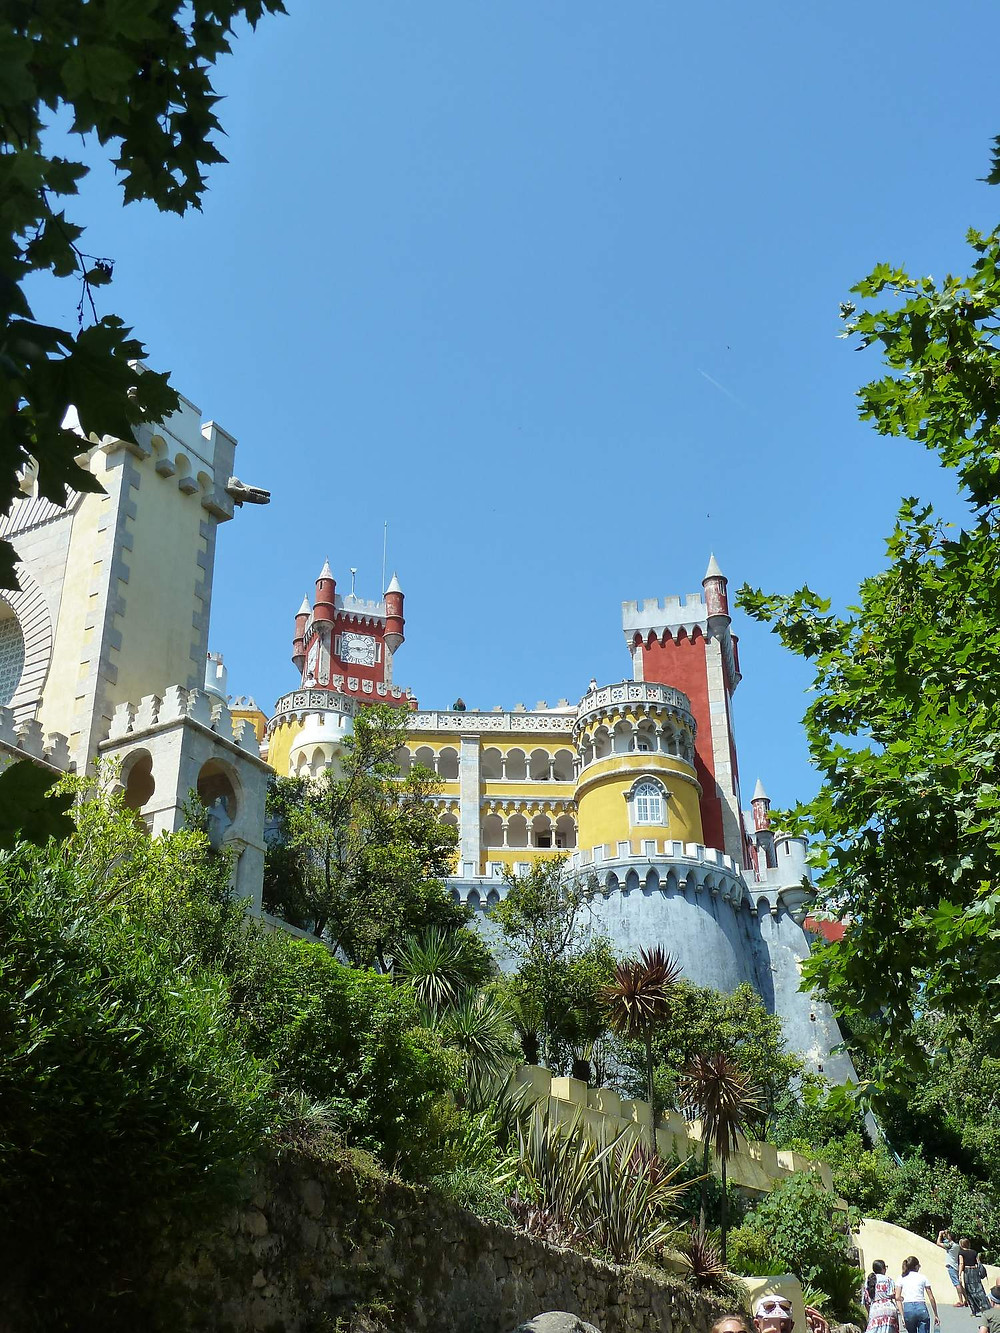 Going up to Pena Palace